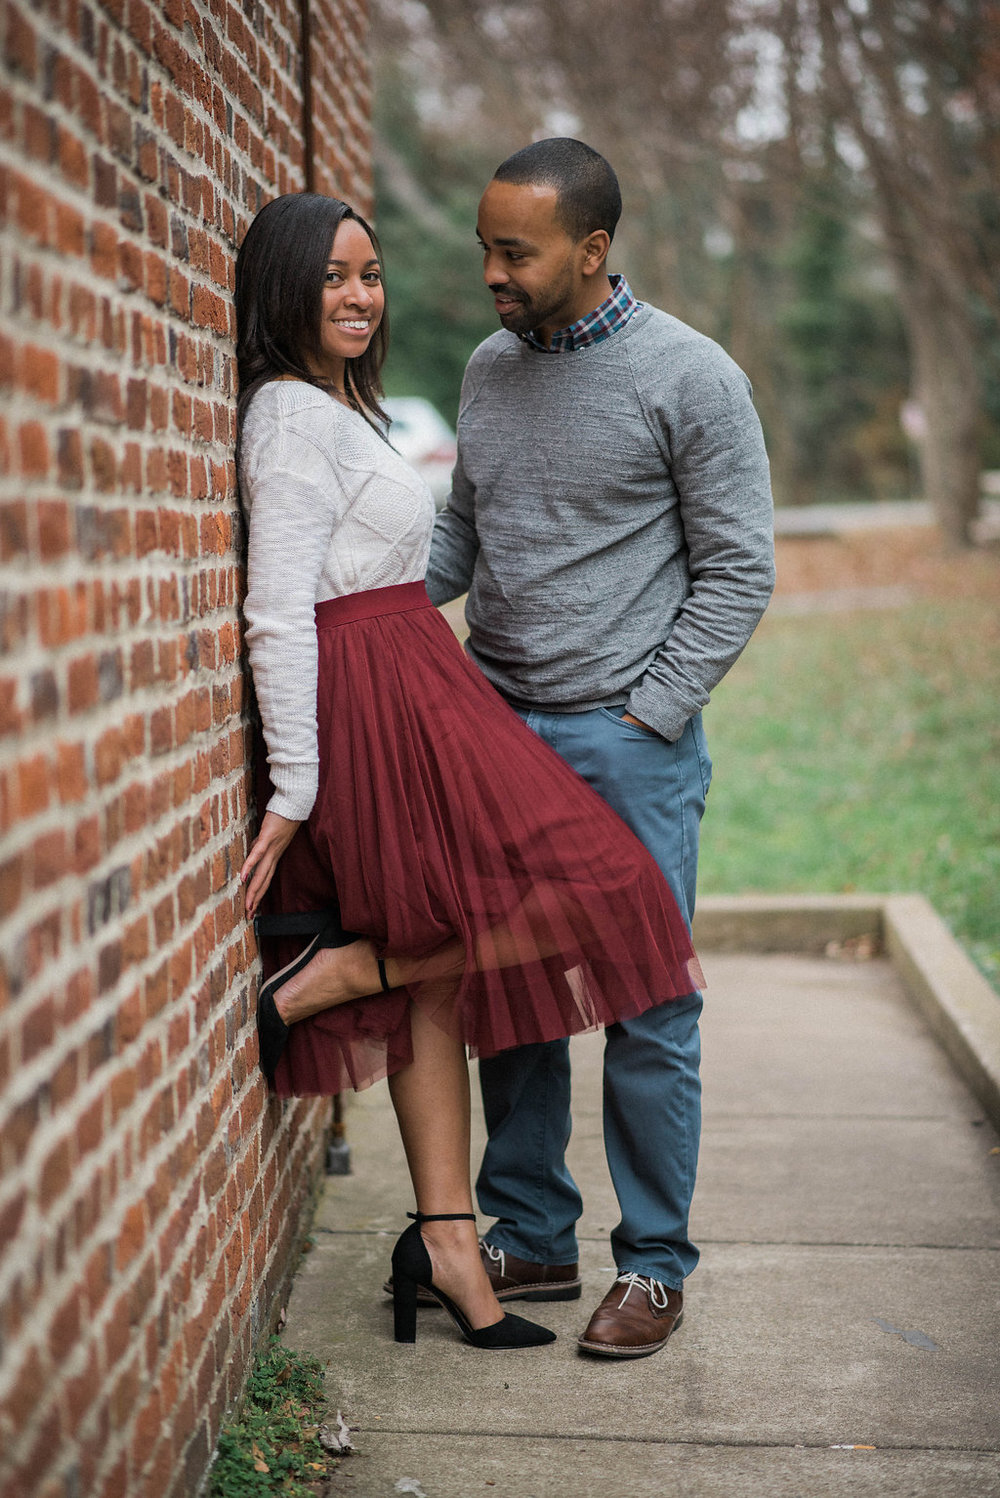 old town leesburg dramatic engagement photo